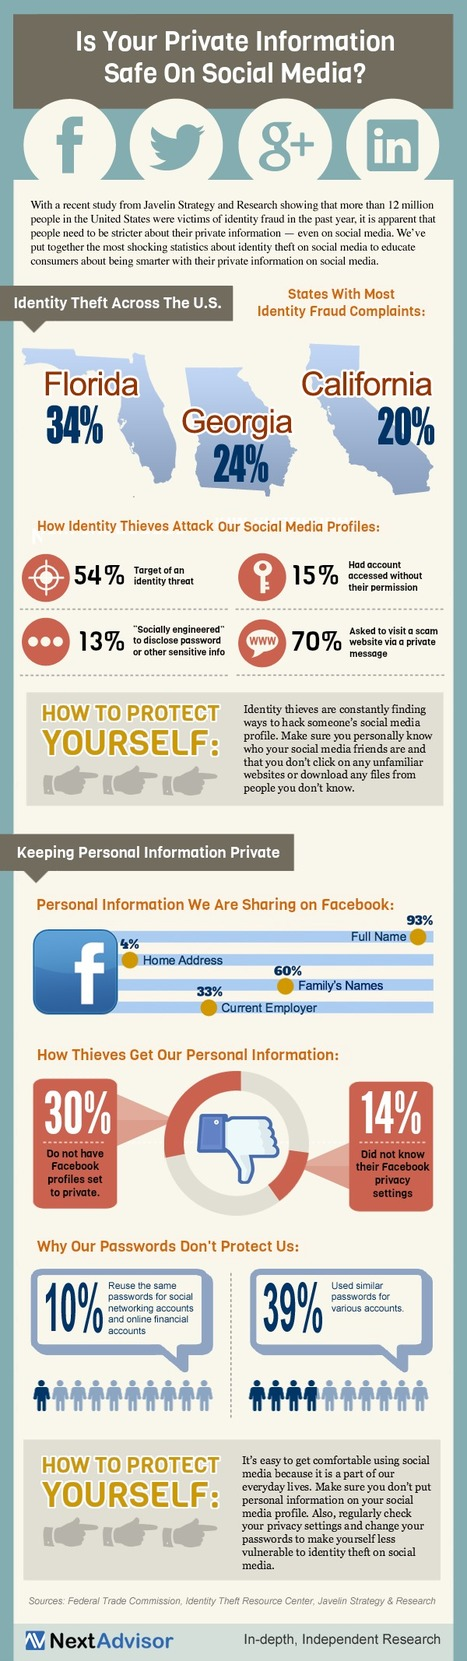 Is Your Private Information Safe on Social Media? [Infographic] | Secondary Education; 21st Century Technology and Social Media | Scoop.it